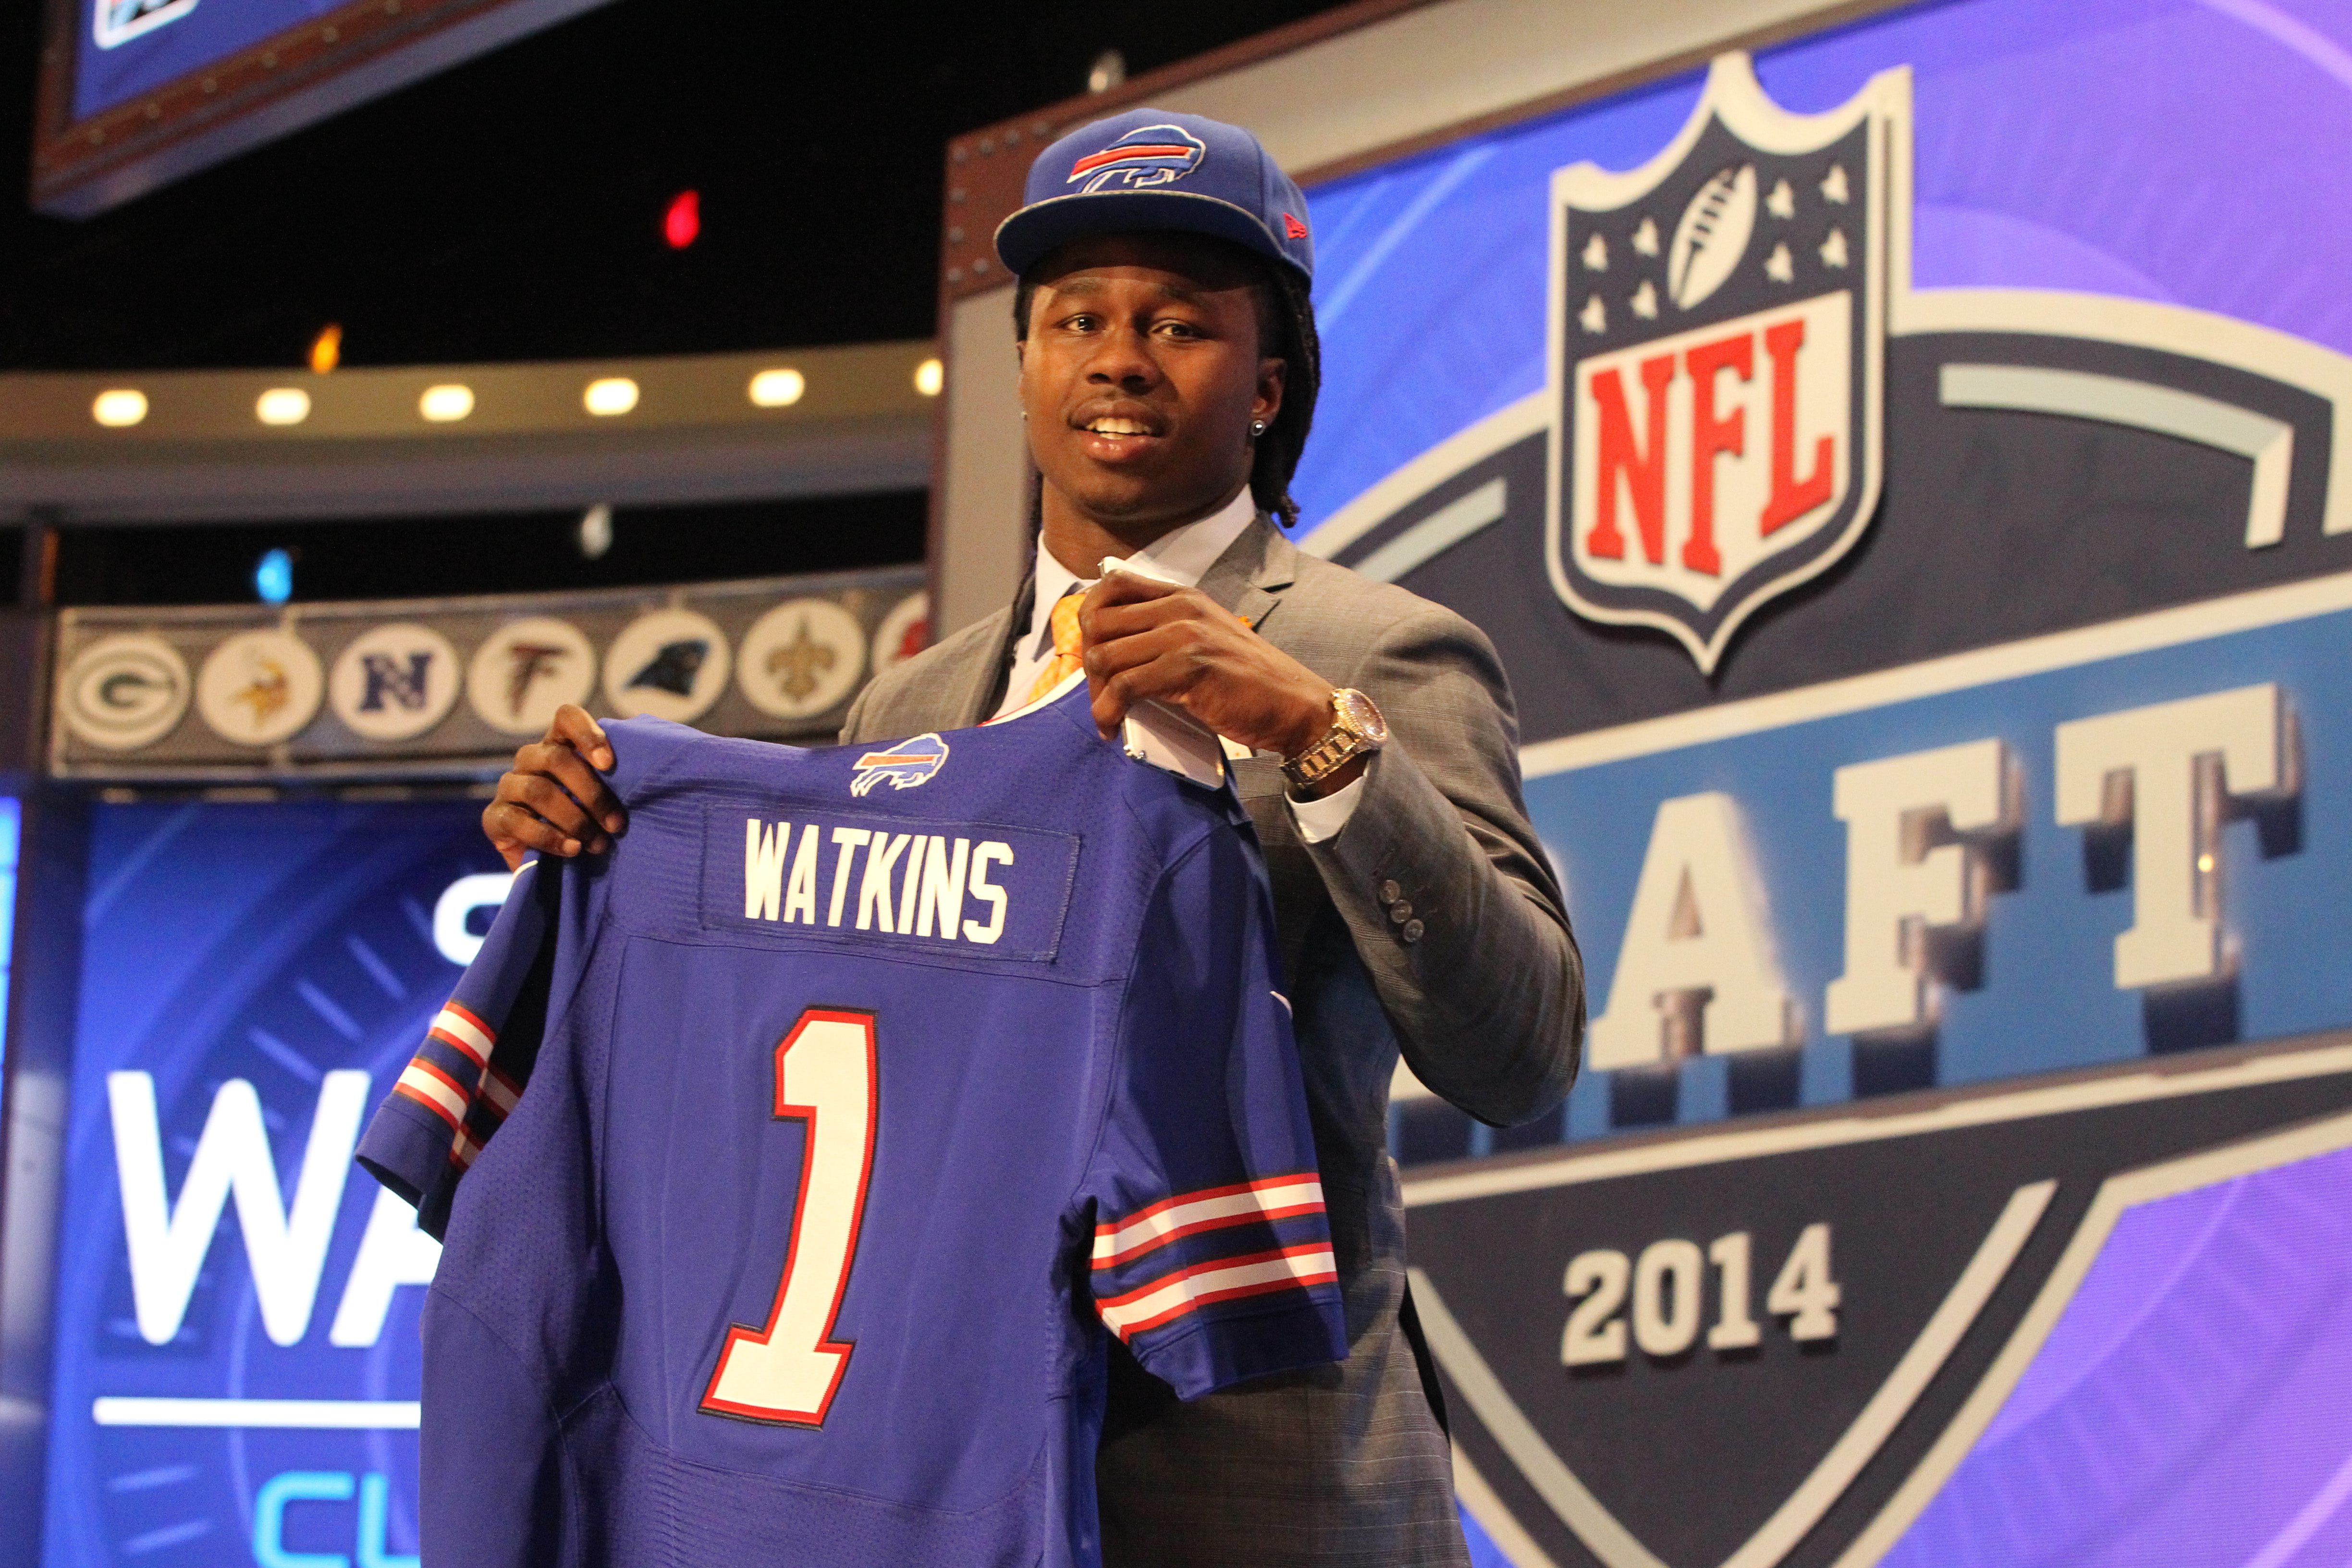 The Bills picked Sammy Watkins with their first pick at the 2014 NFL draft at Radio City Music Hall in New York City, on Thursday, May 8, 2014.  (James P. McCoy/ Buffalo News)